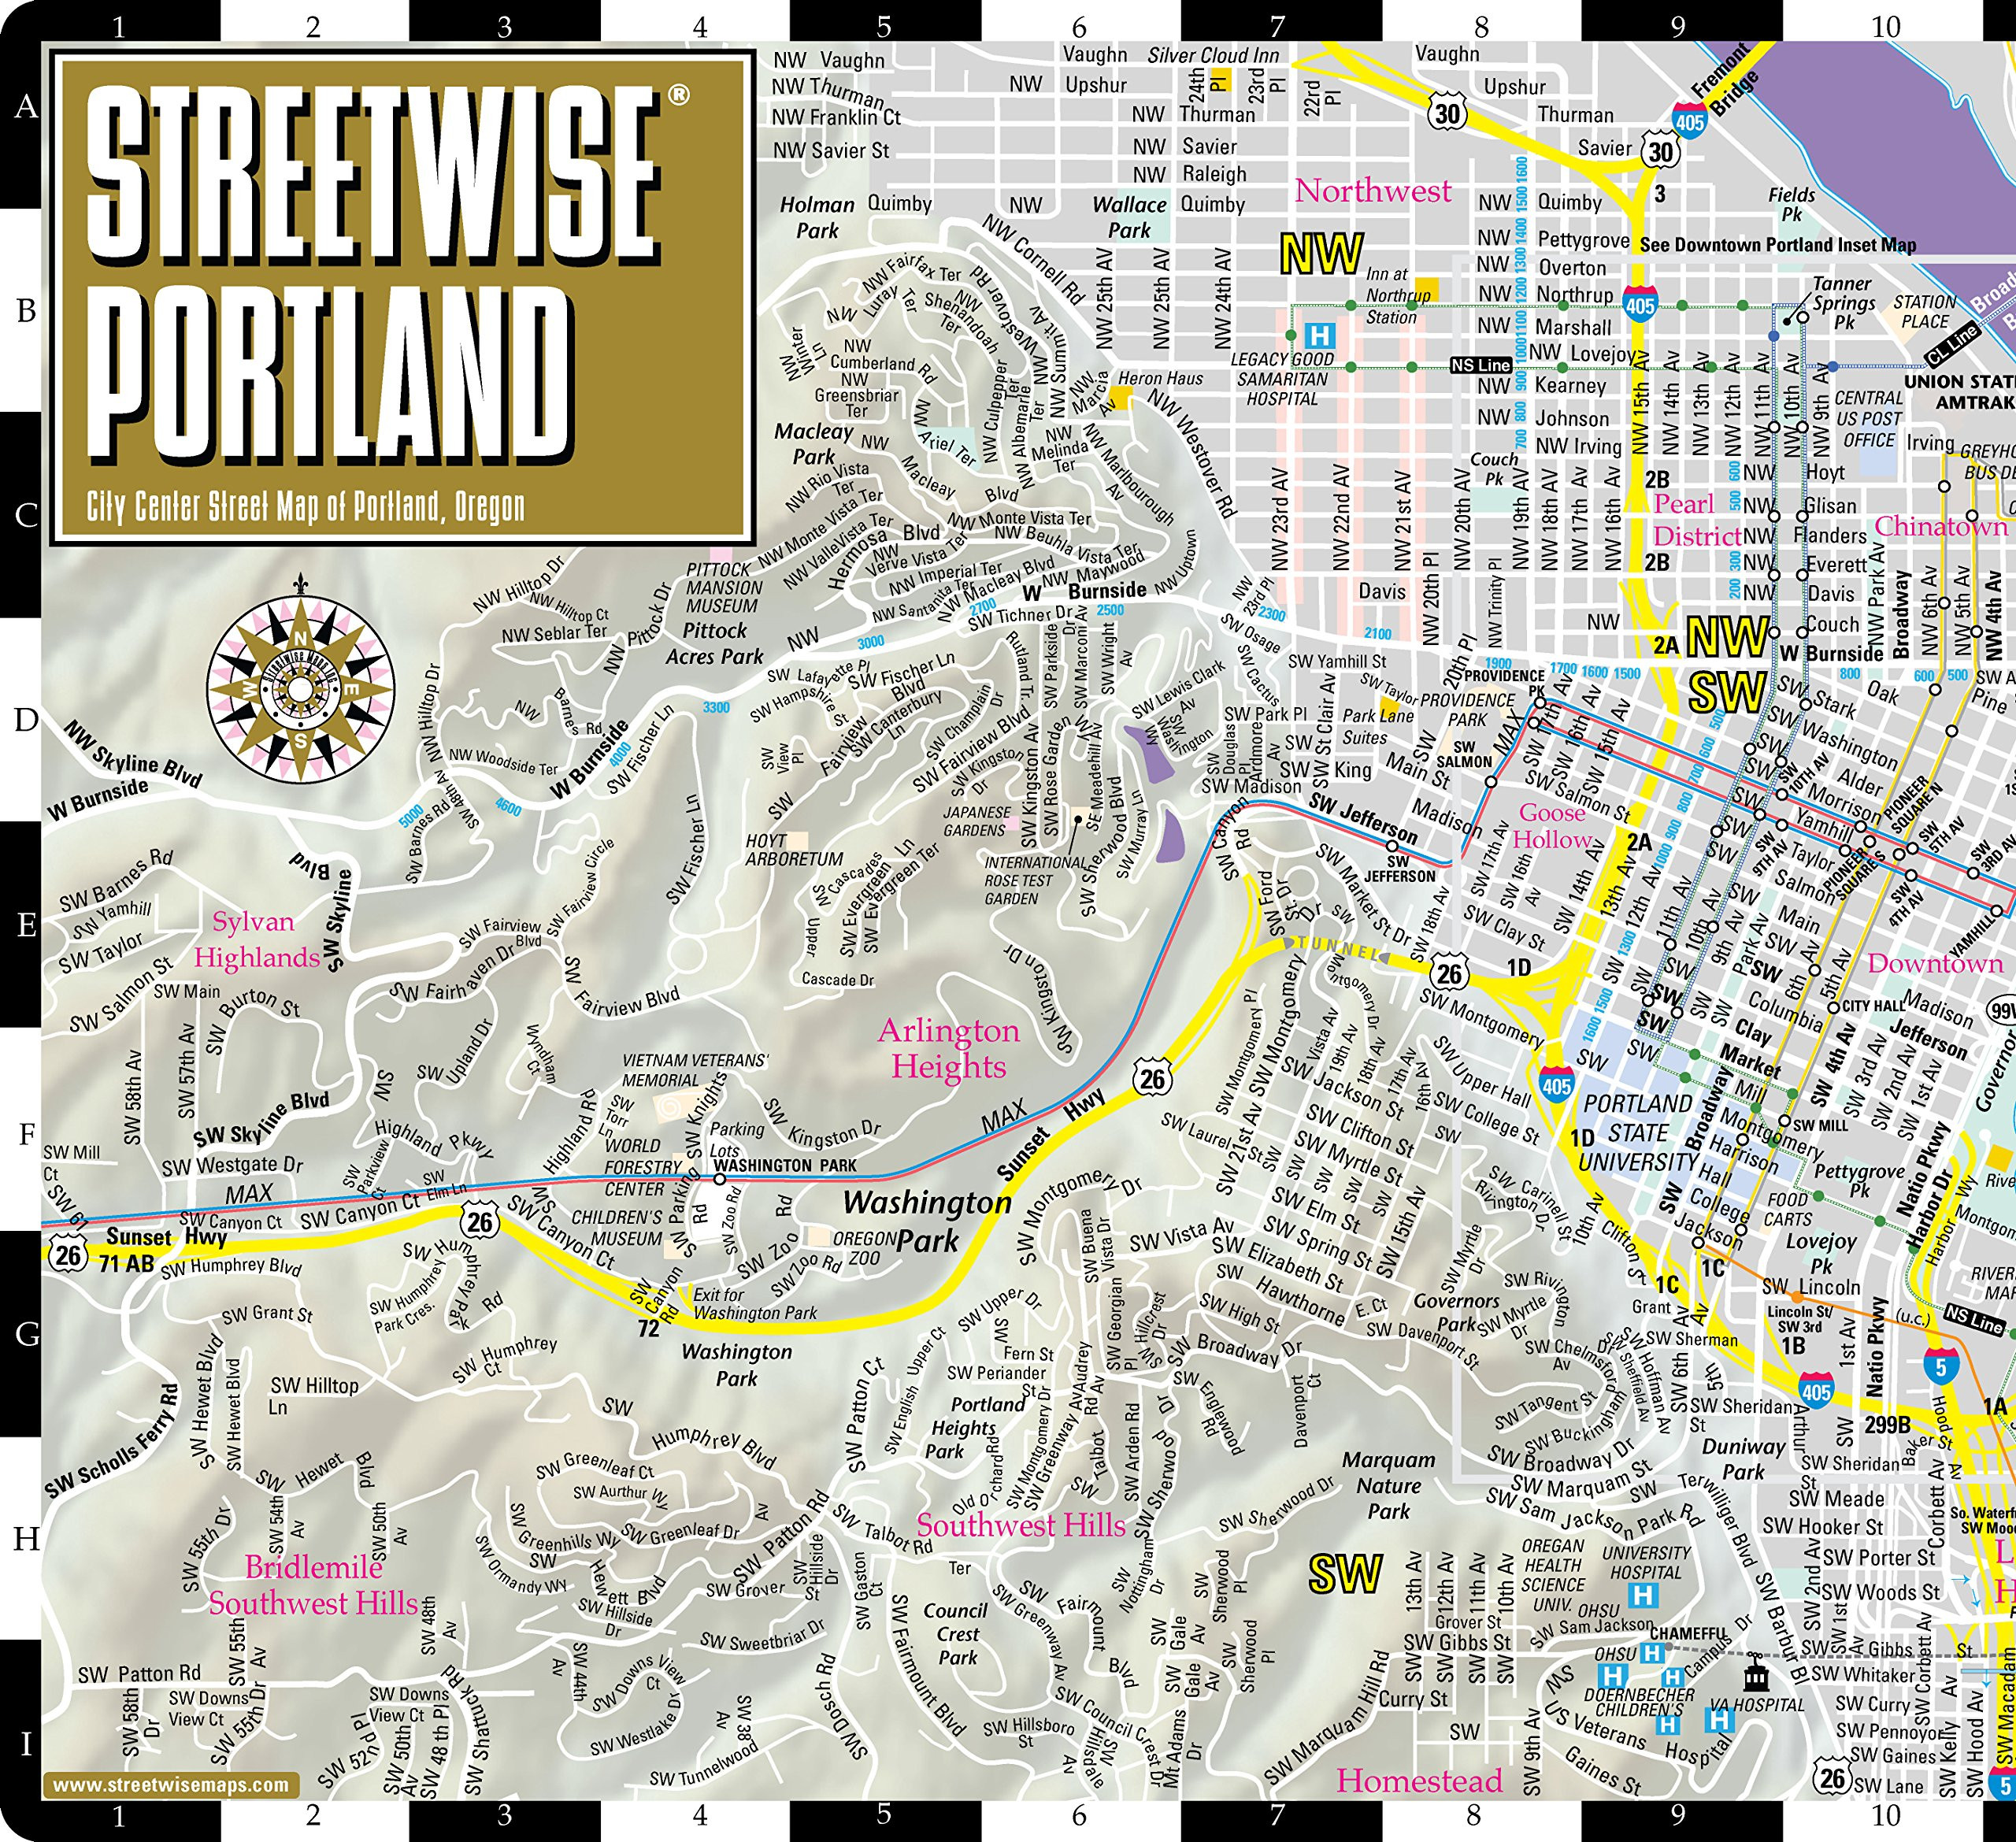 Streetwise Portland Map Laminated City Center Street Map of Portland Oregon Folding pocket size travel map with Max Light Rail map Streetwise Maps